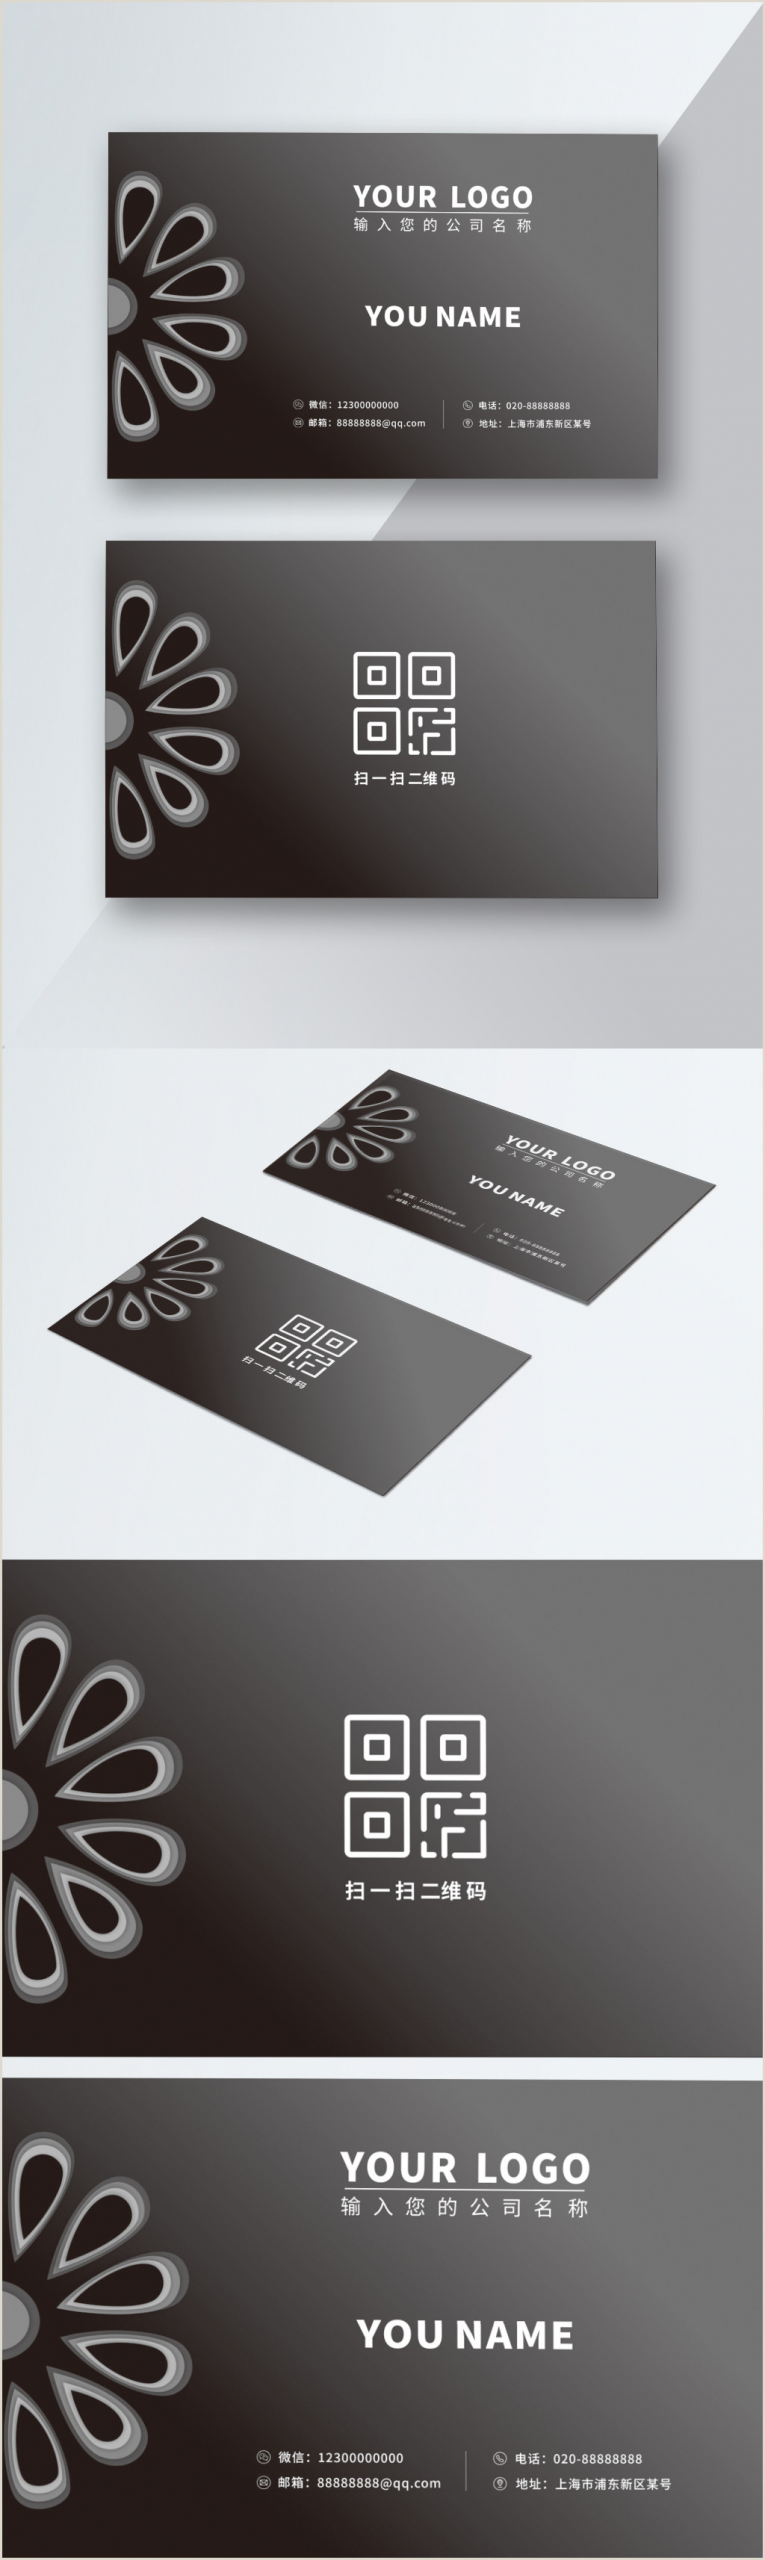 Business Cards Backgrounds Business Card Background Image Template Image Picture Free